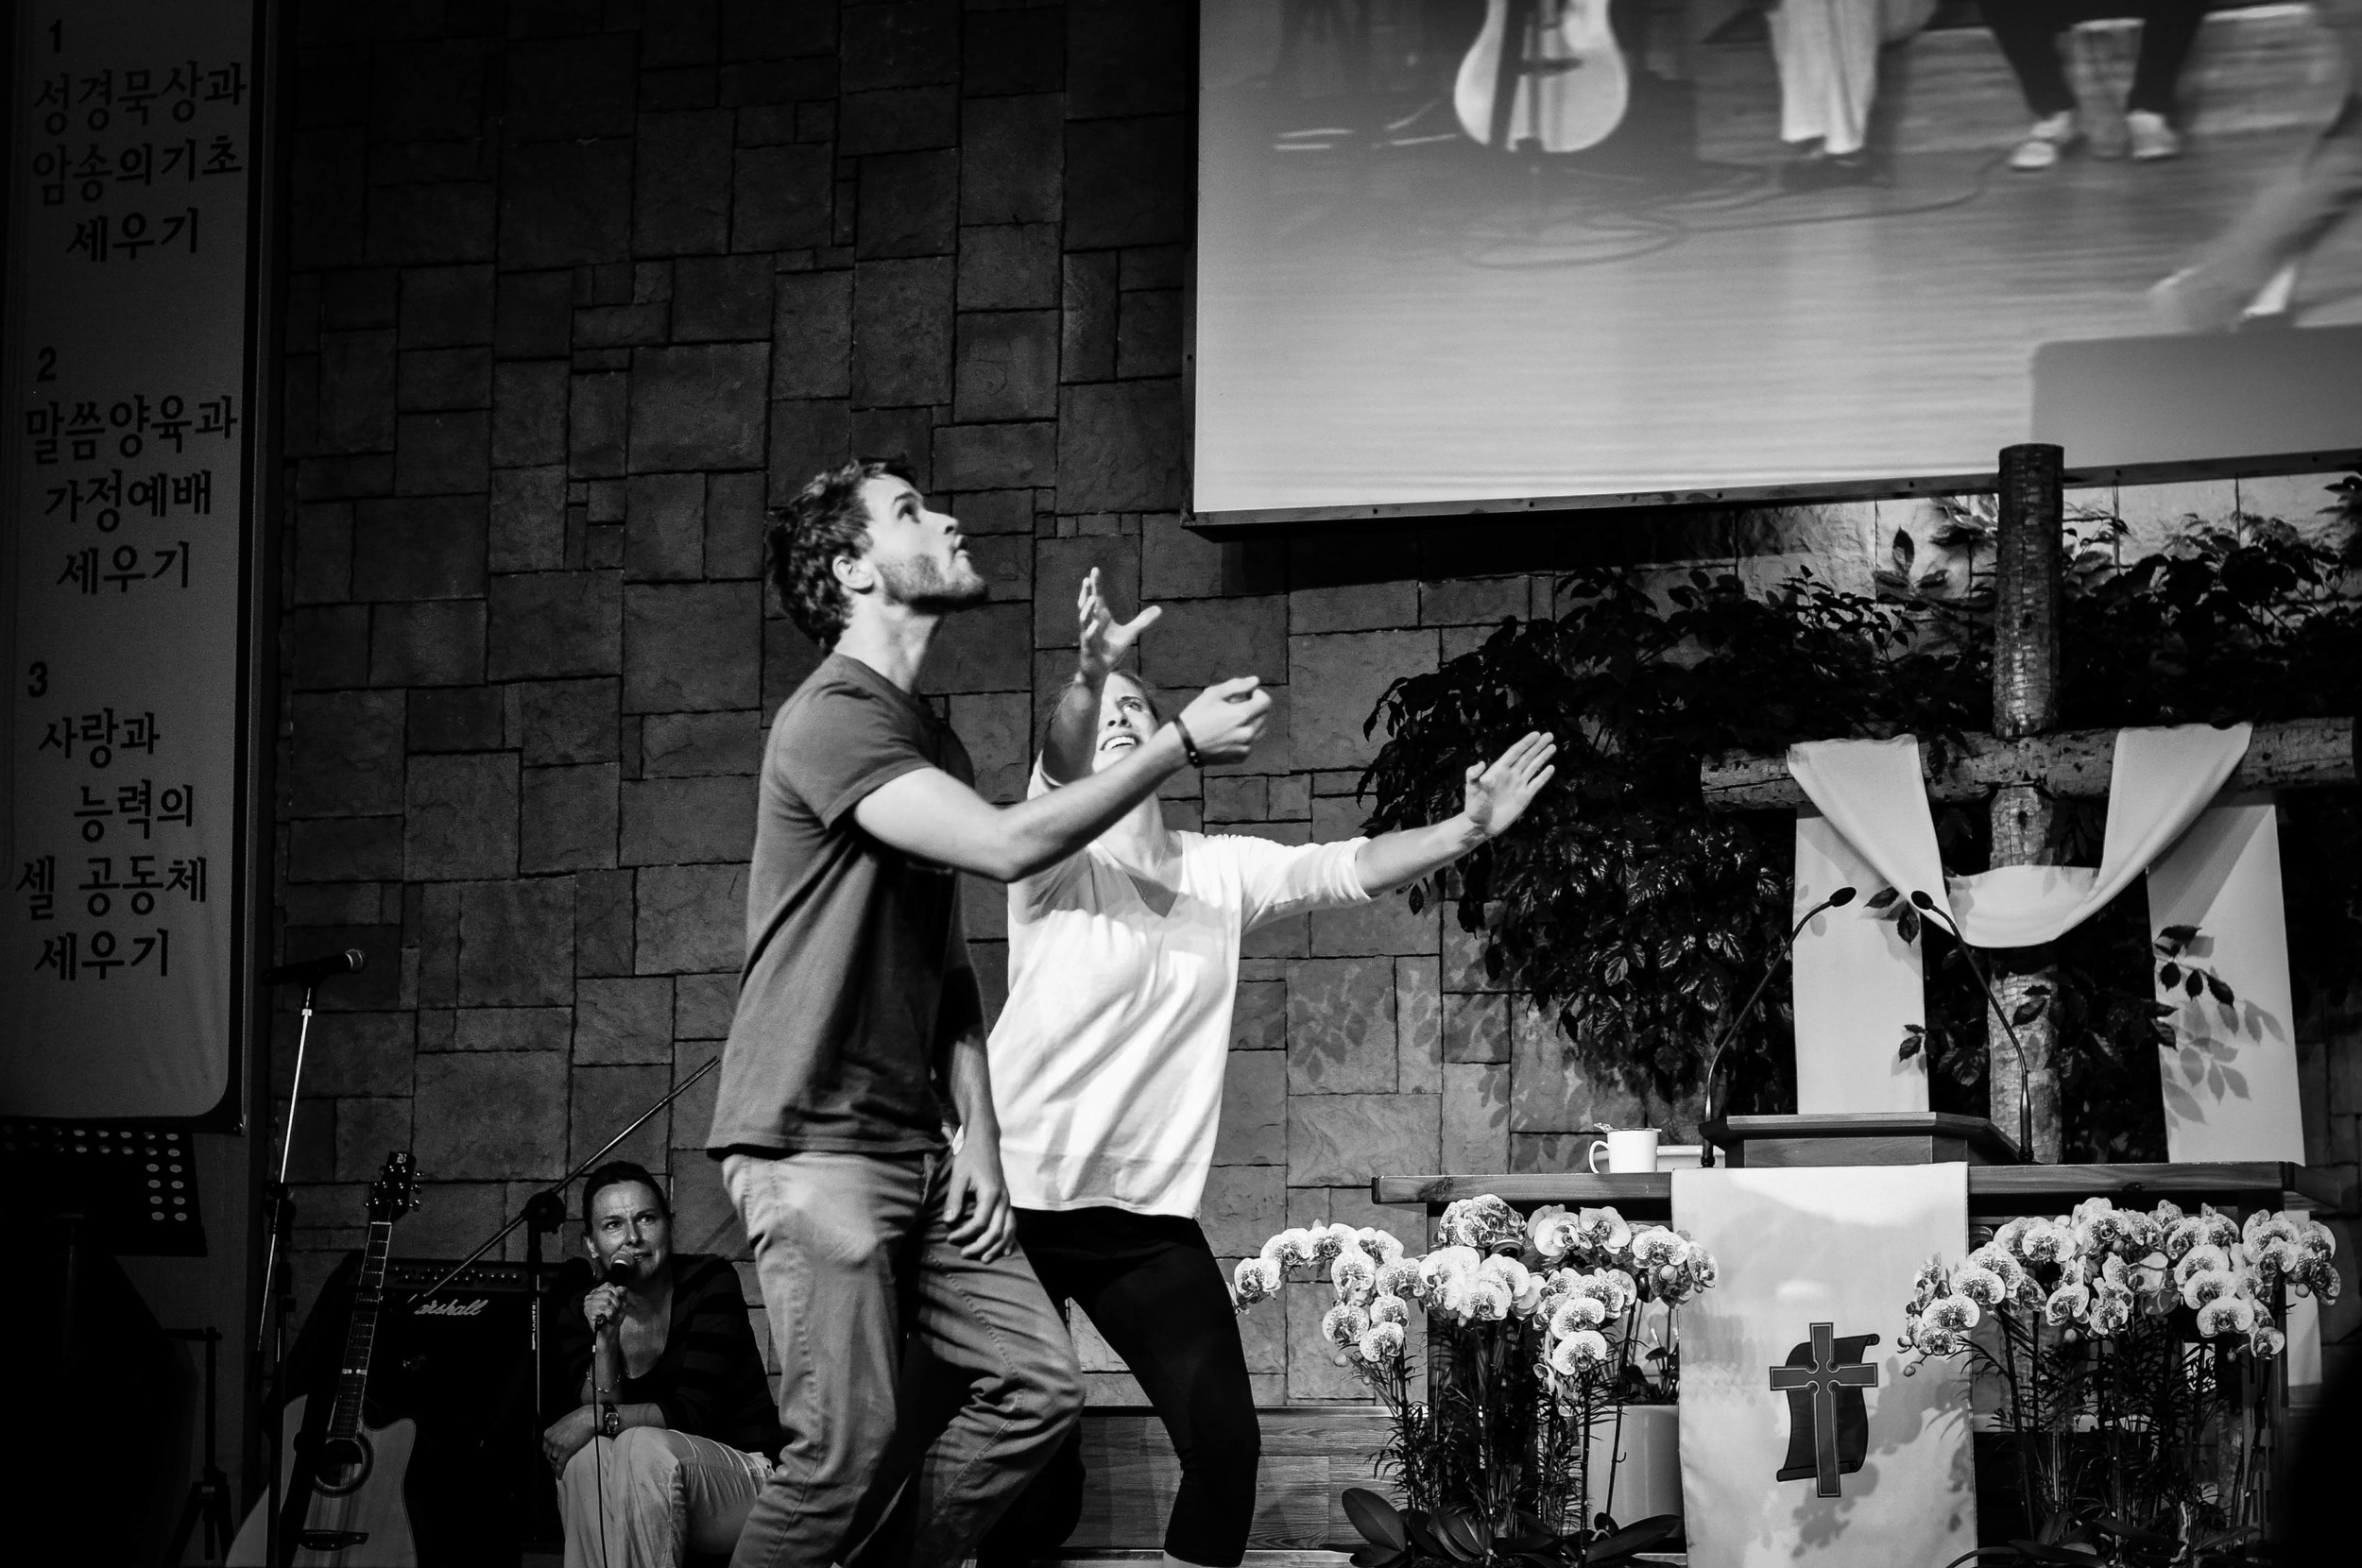 Performing an evangelism drama and preaching after in a Korea church. Seoul, South Korea.